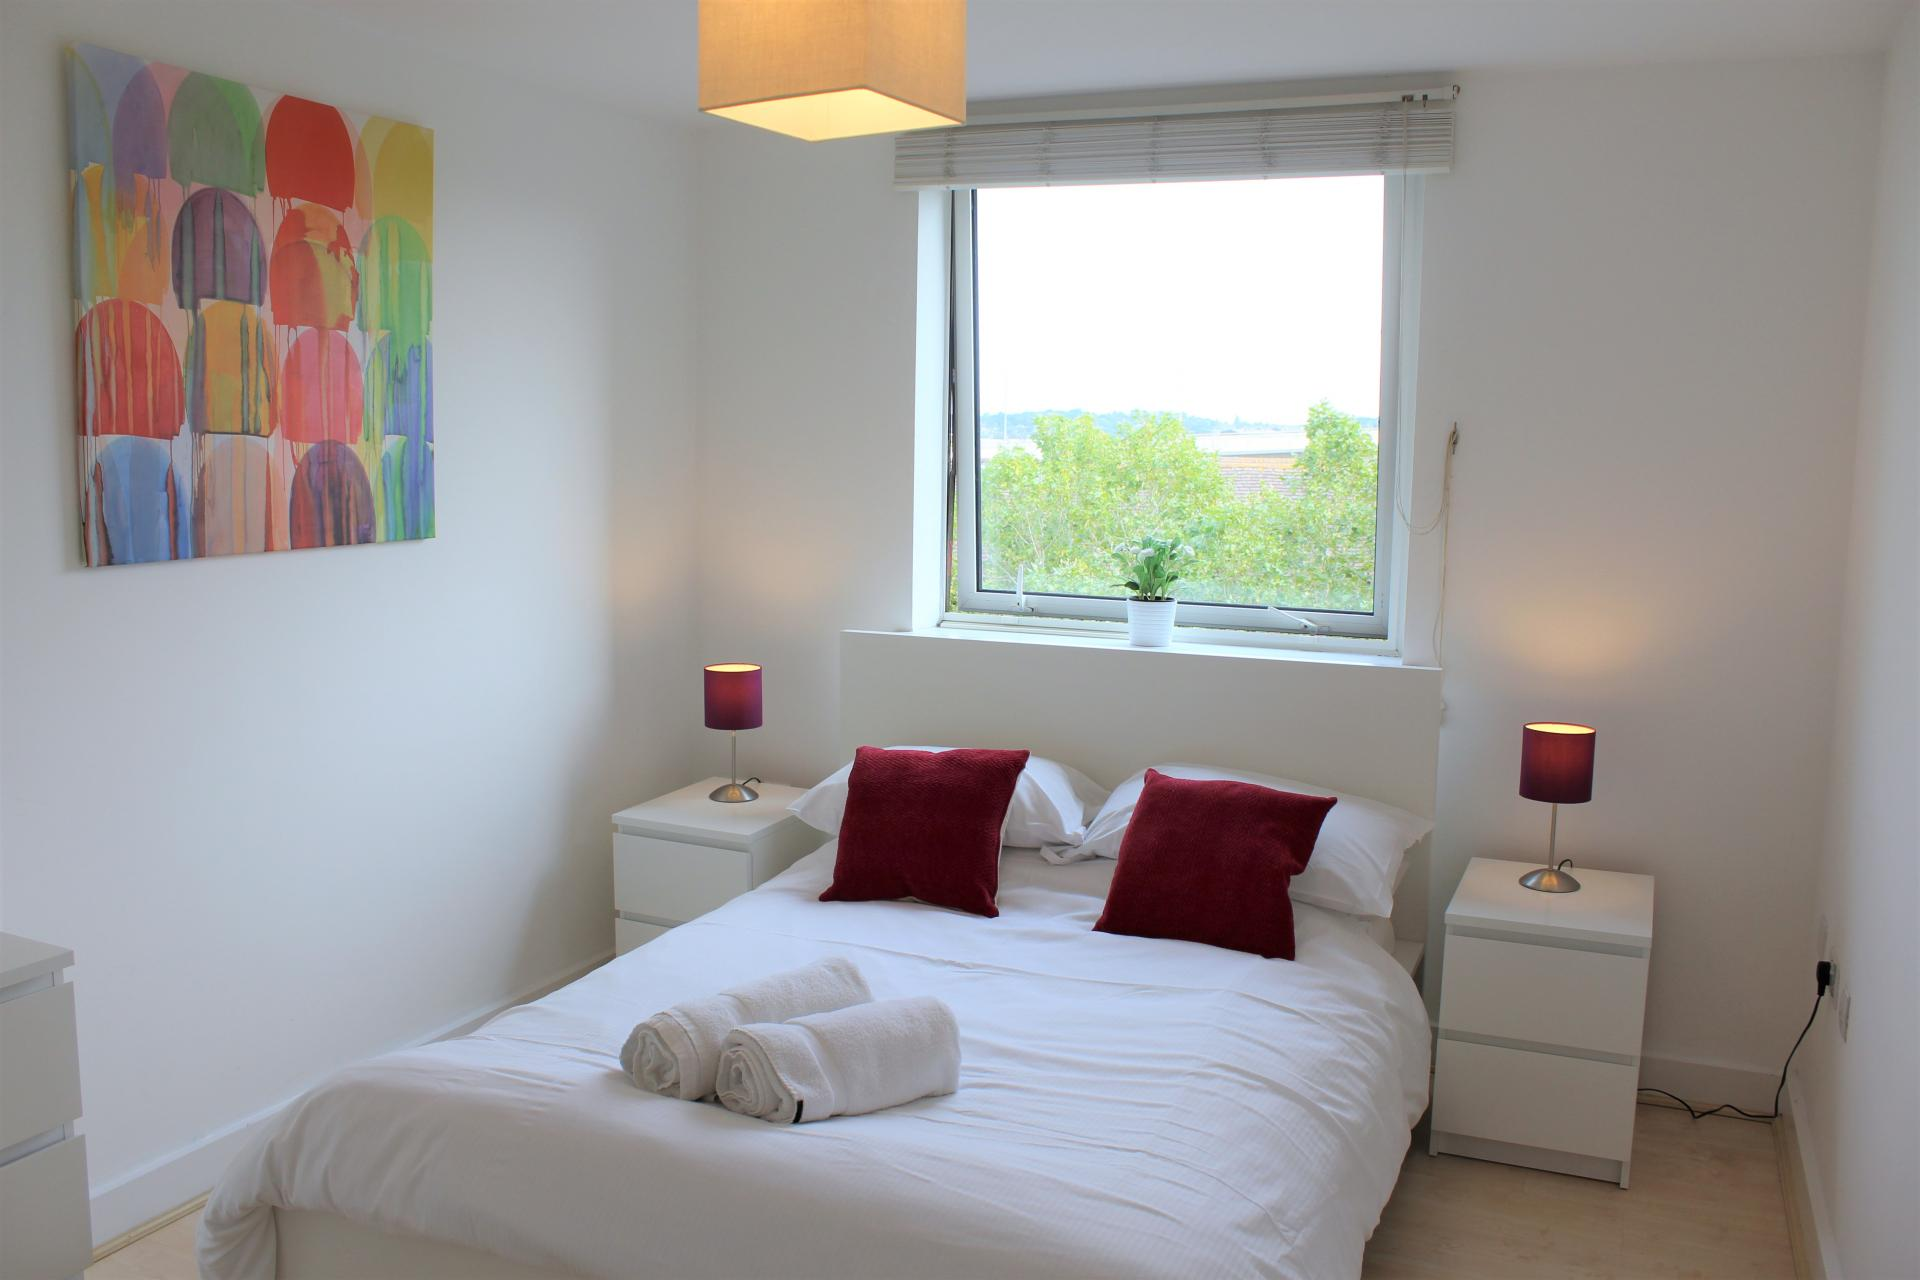 Bed at Ocean Village Serviced Apartments - Citybase Apartments